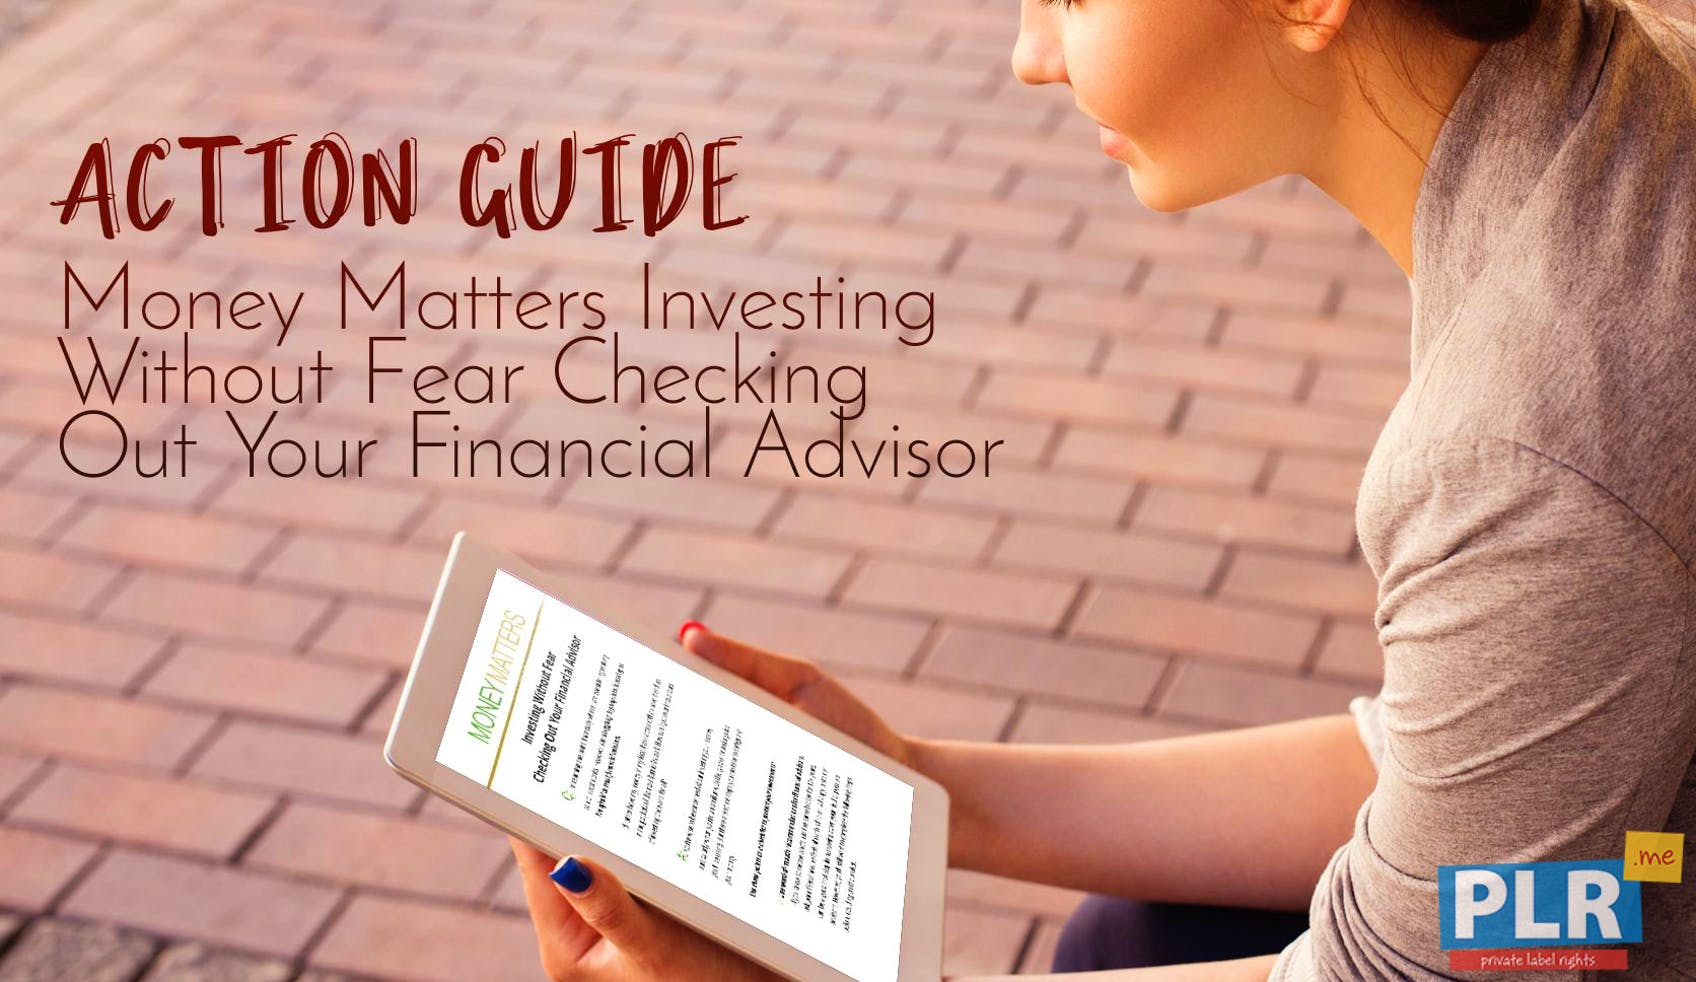 Money Matters Investing Without Fear Checking Out Your Financial Advisor